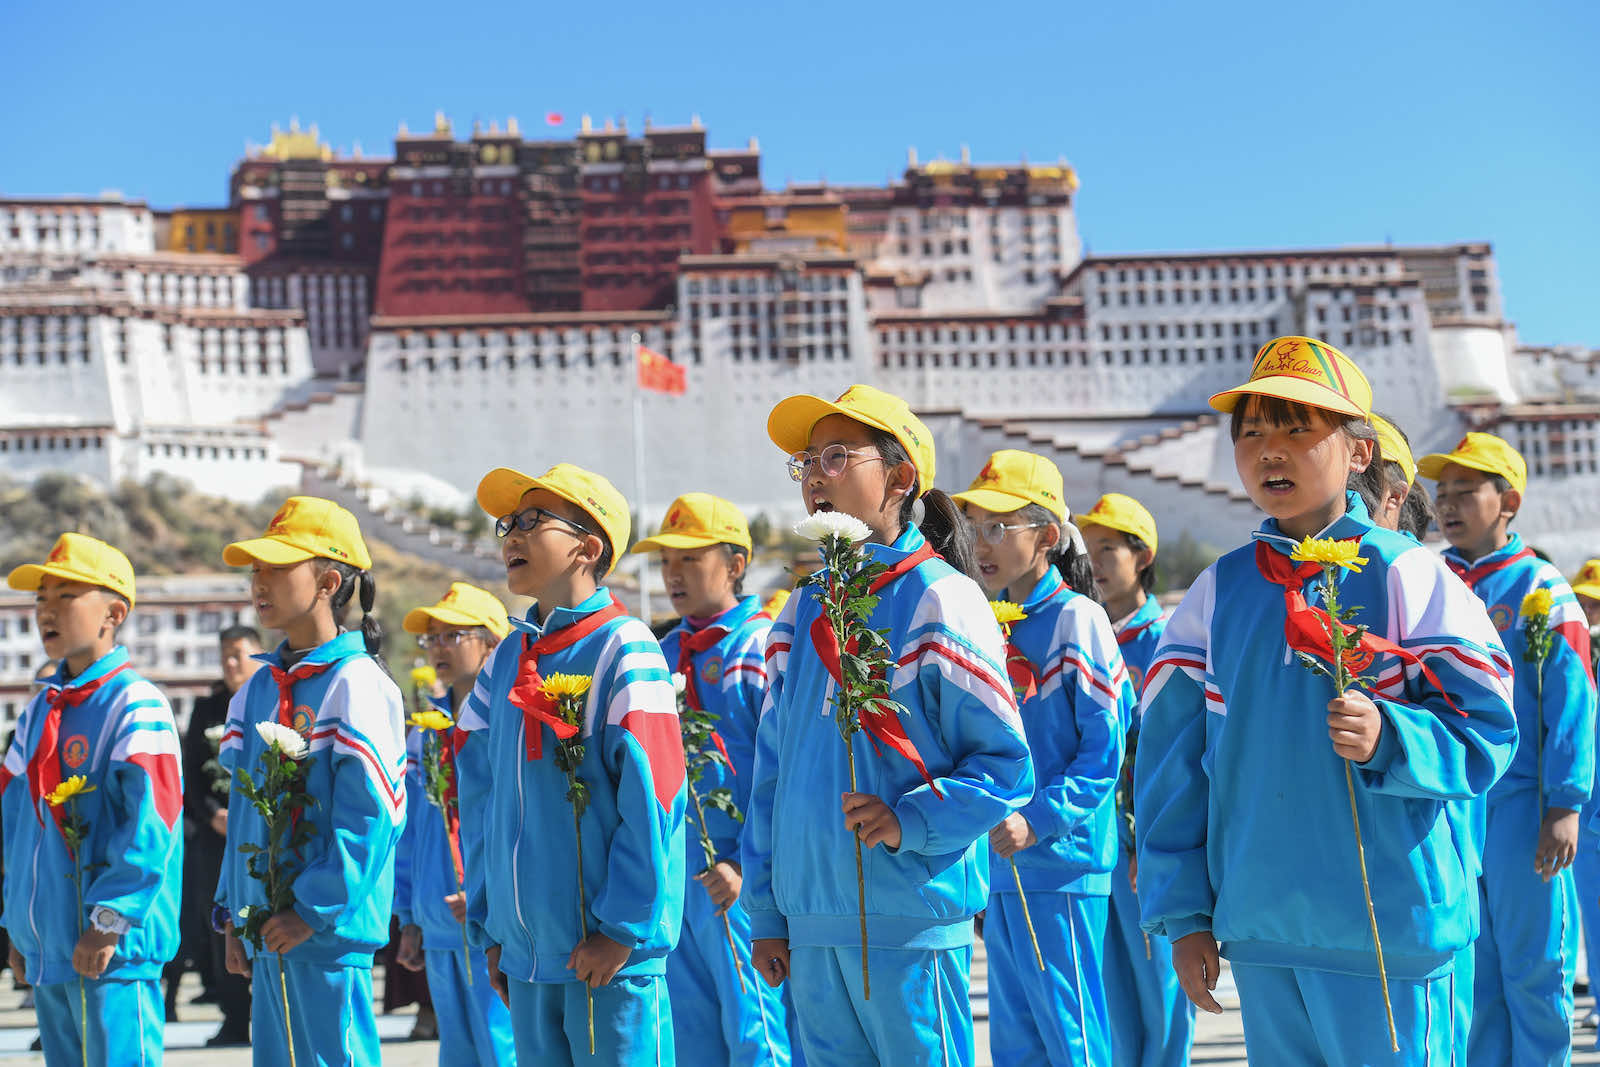 """Students sing to mark the 70th anniversary of the """"peaceful liberation"""" of Tibet, 23 May in Lhasa (Photo by Gongga Laisong/China News Service via Getty Images"""